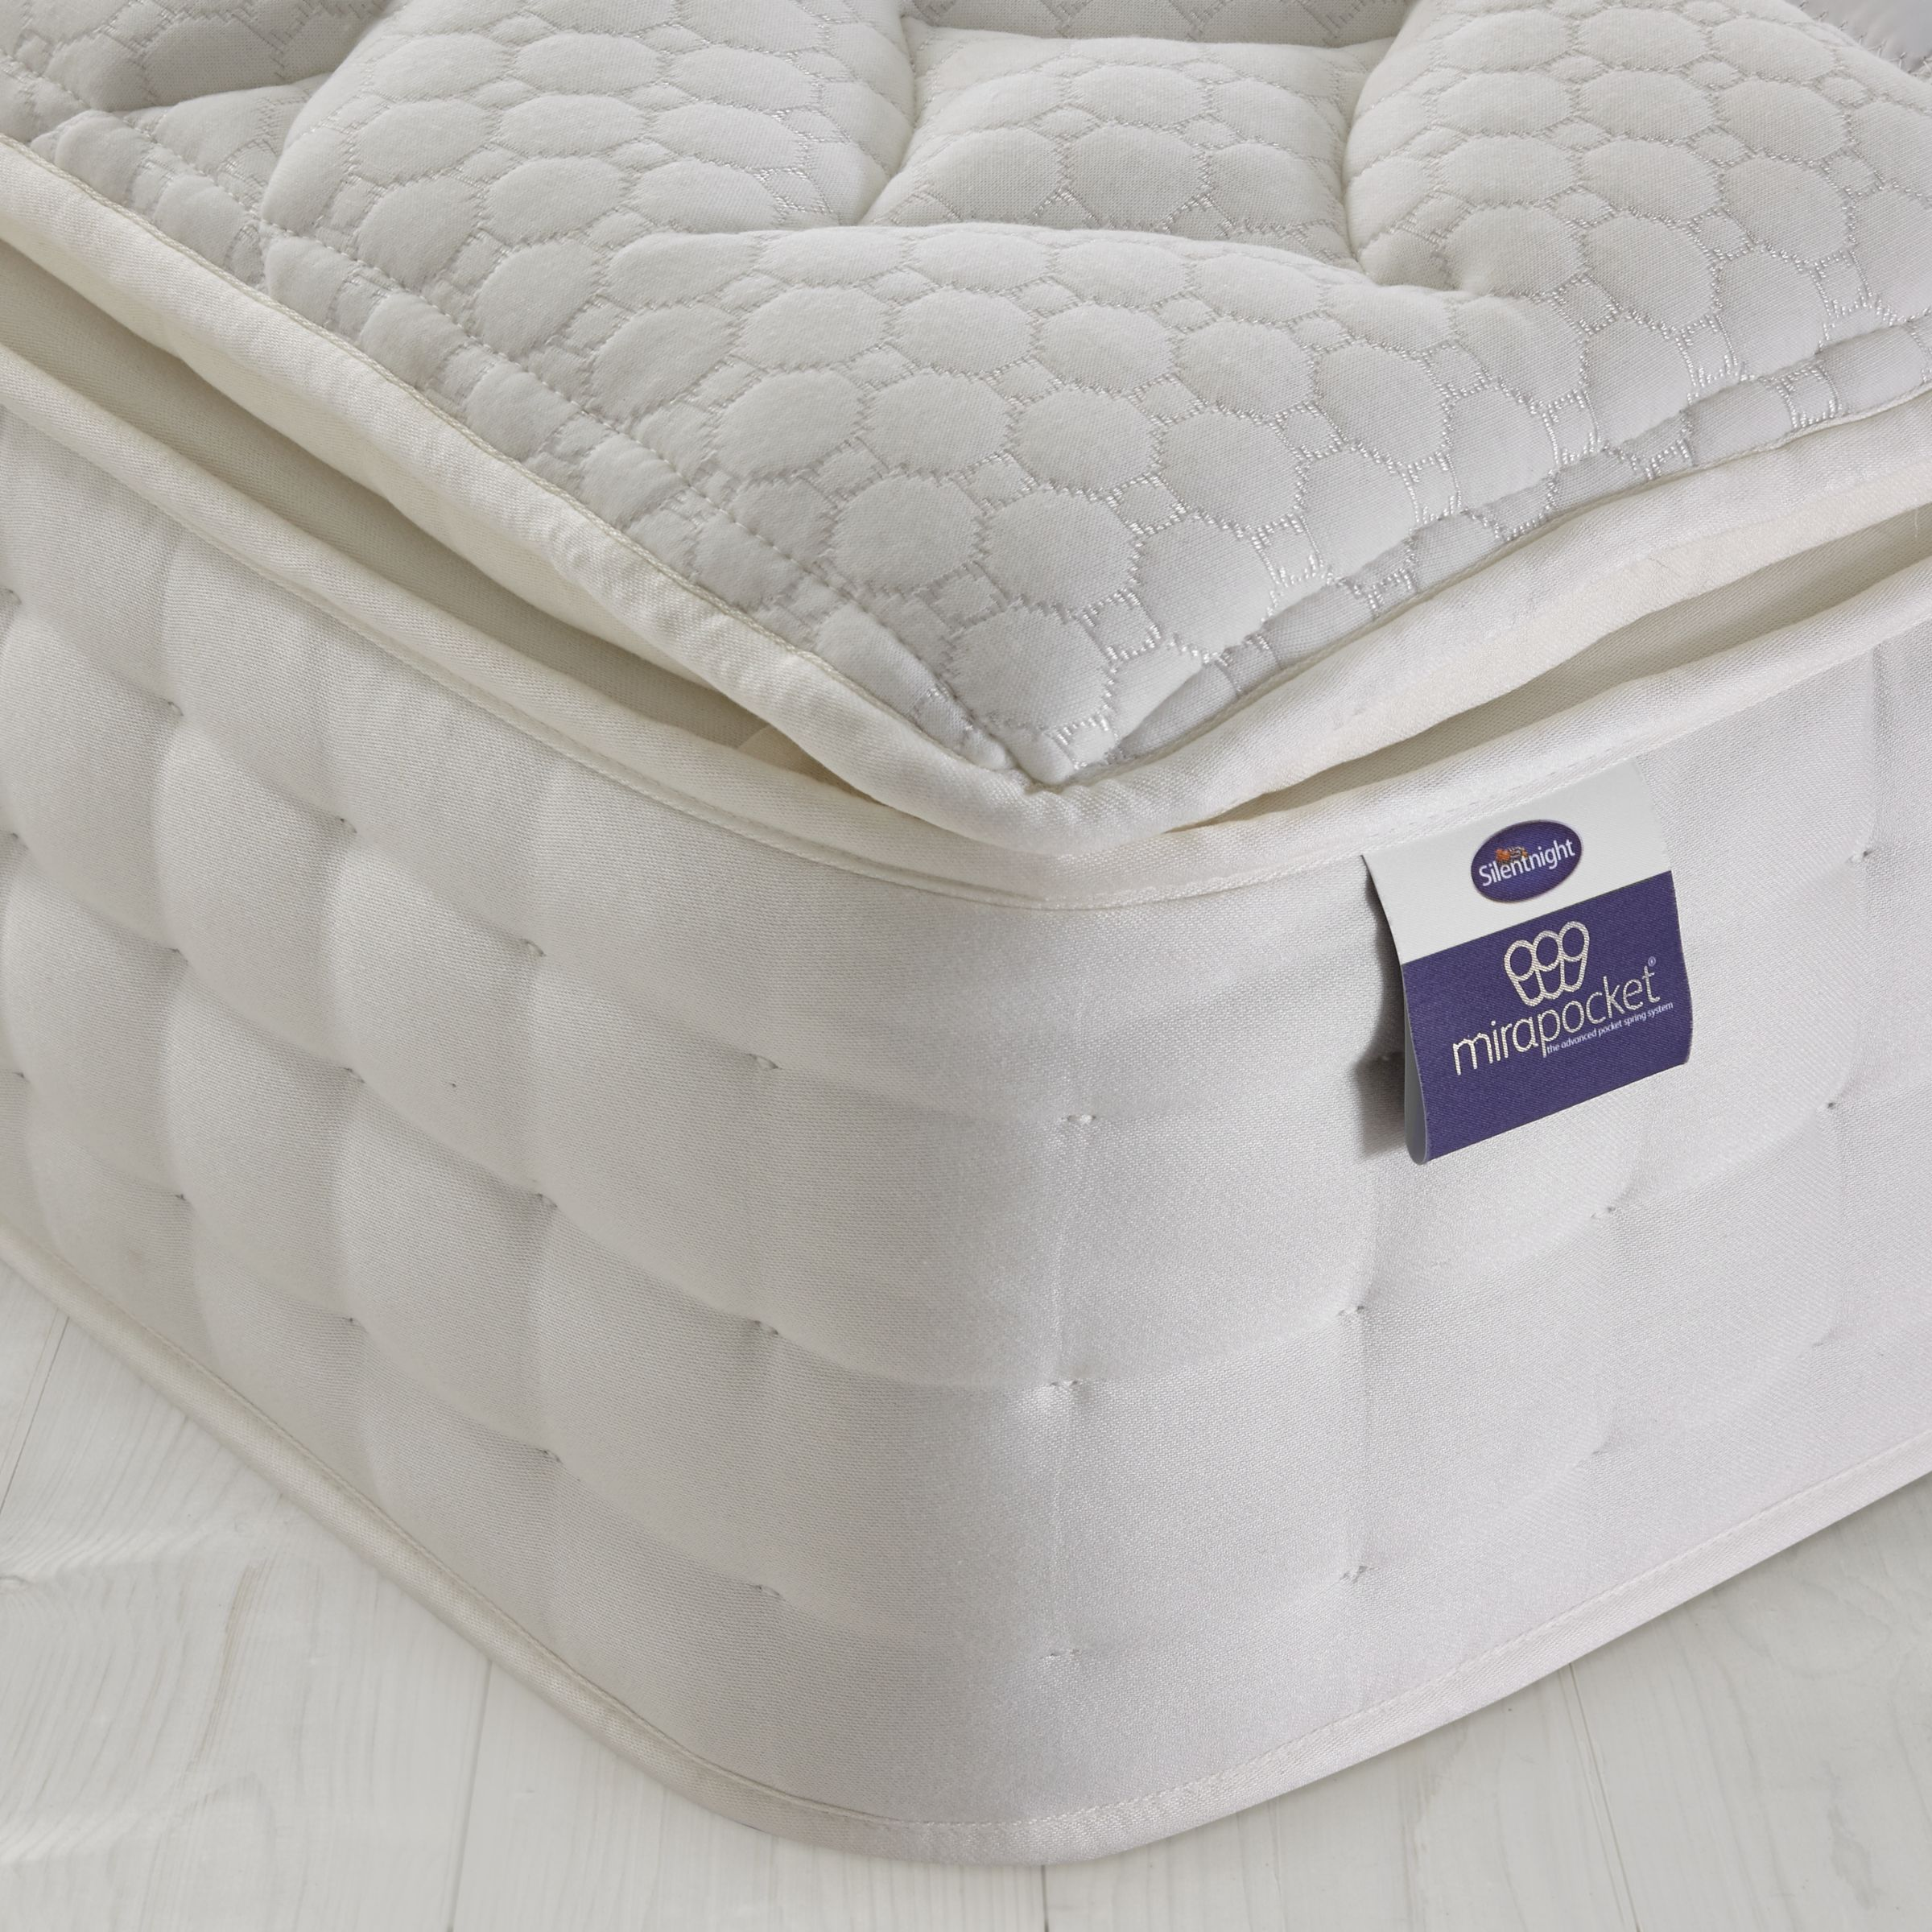 Silentnight Mirapocket 2000 Latex Mattress, Kingsize